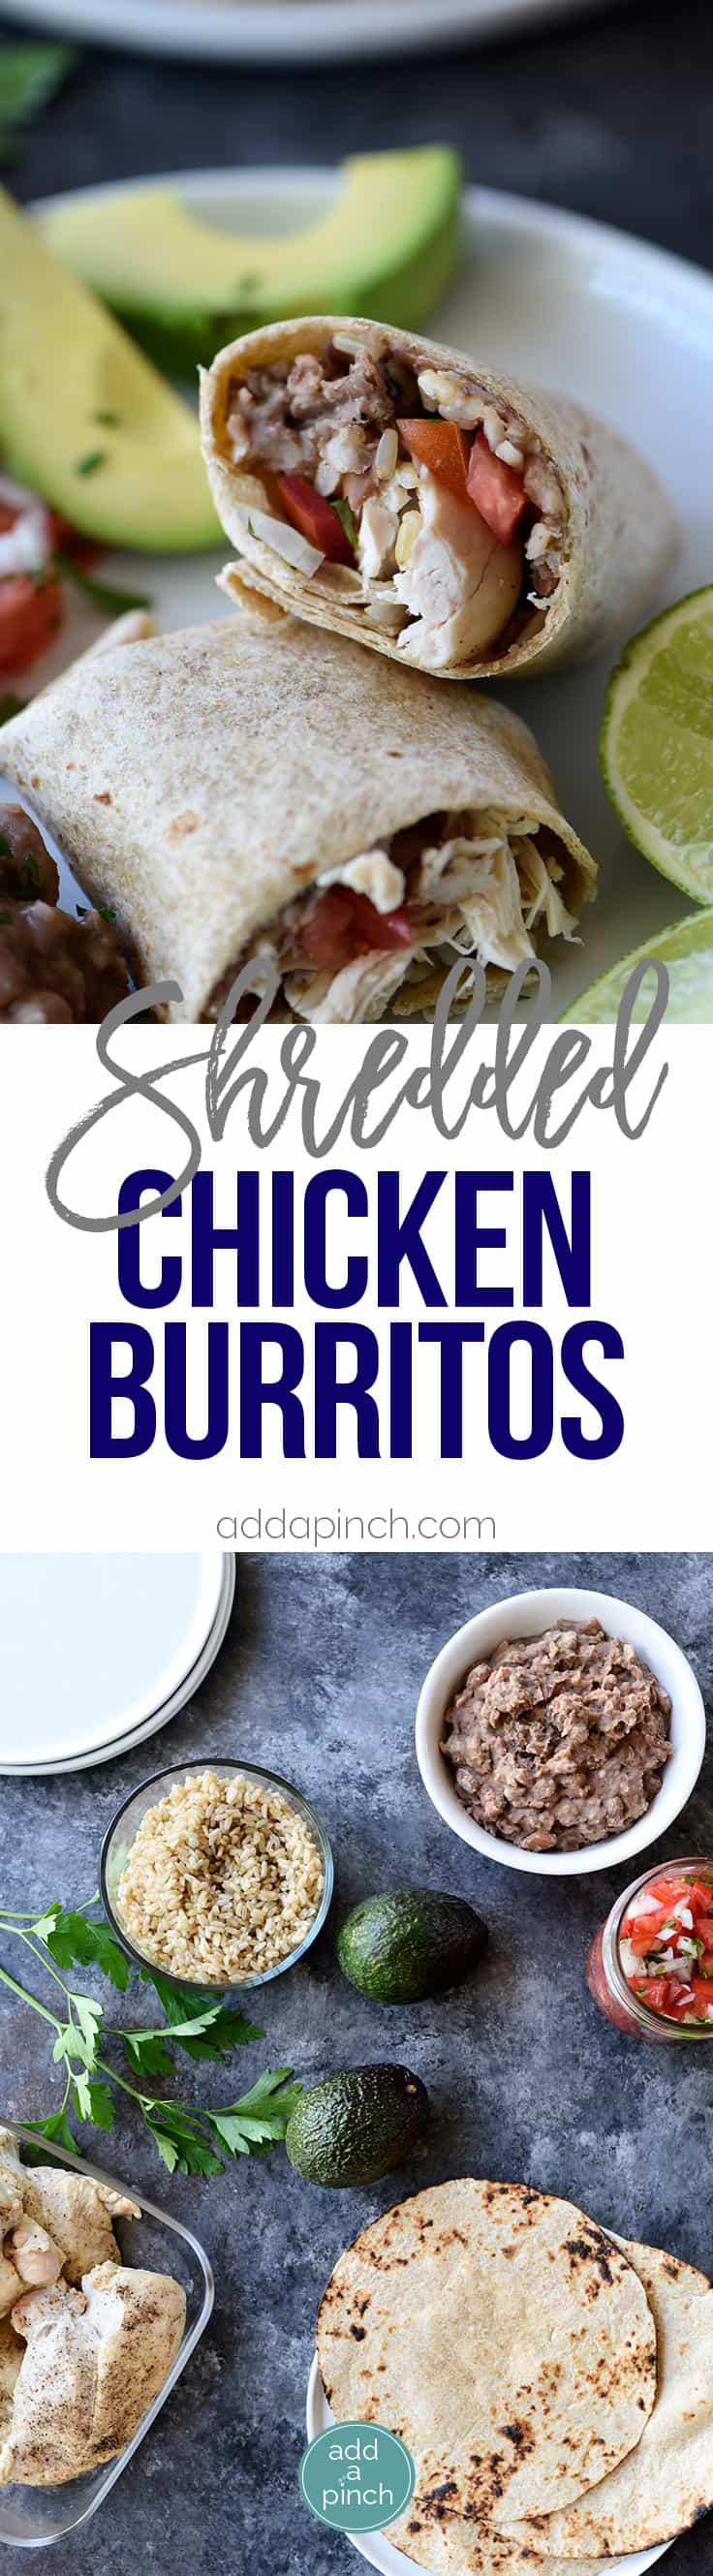 Shredded Chicken Burritos Recipe - This traditional chicken burrito makes a quick and easy meal comes together in a snap for a favorite lunch or supper! // addapinch.com